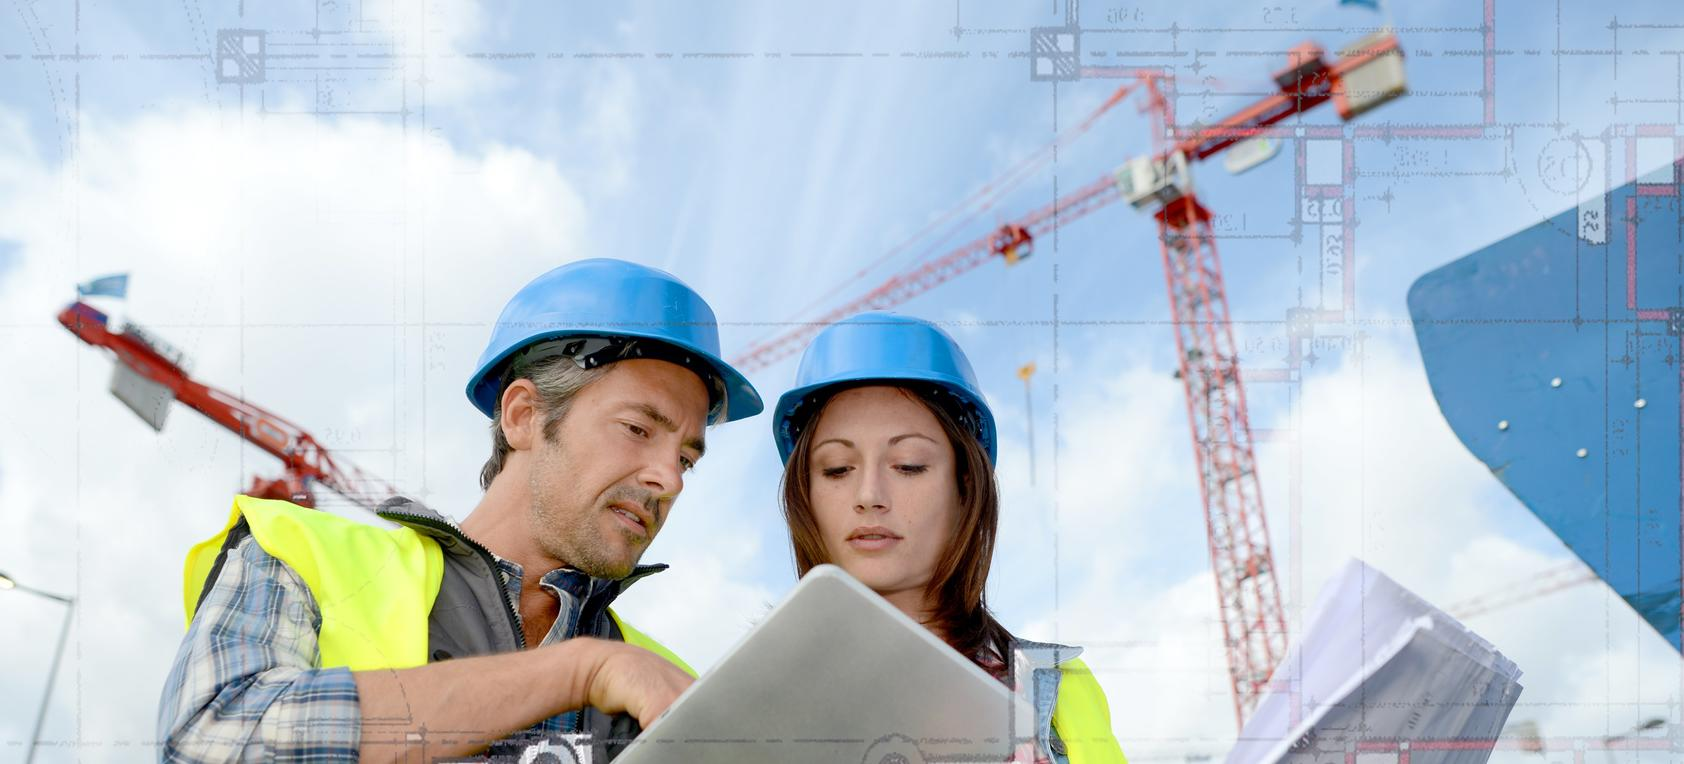 Pro-energo is a company engaged in project design and implementation, engineering and consulting services.